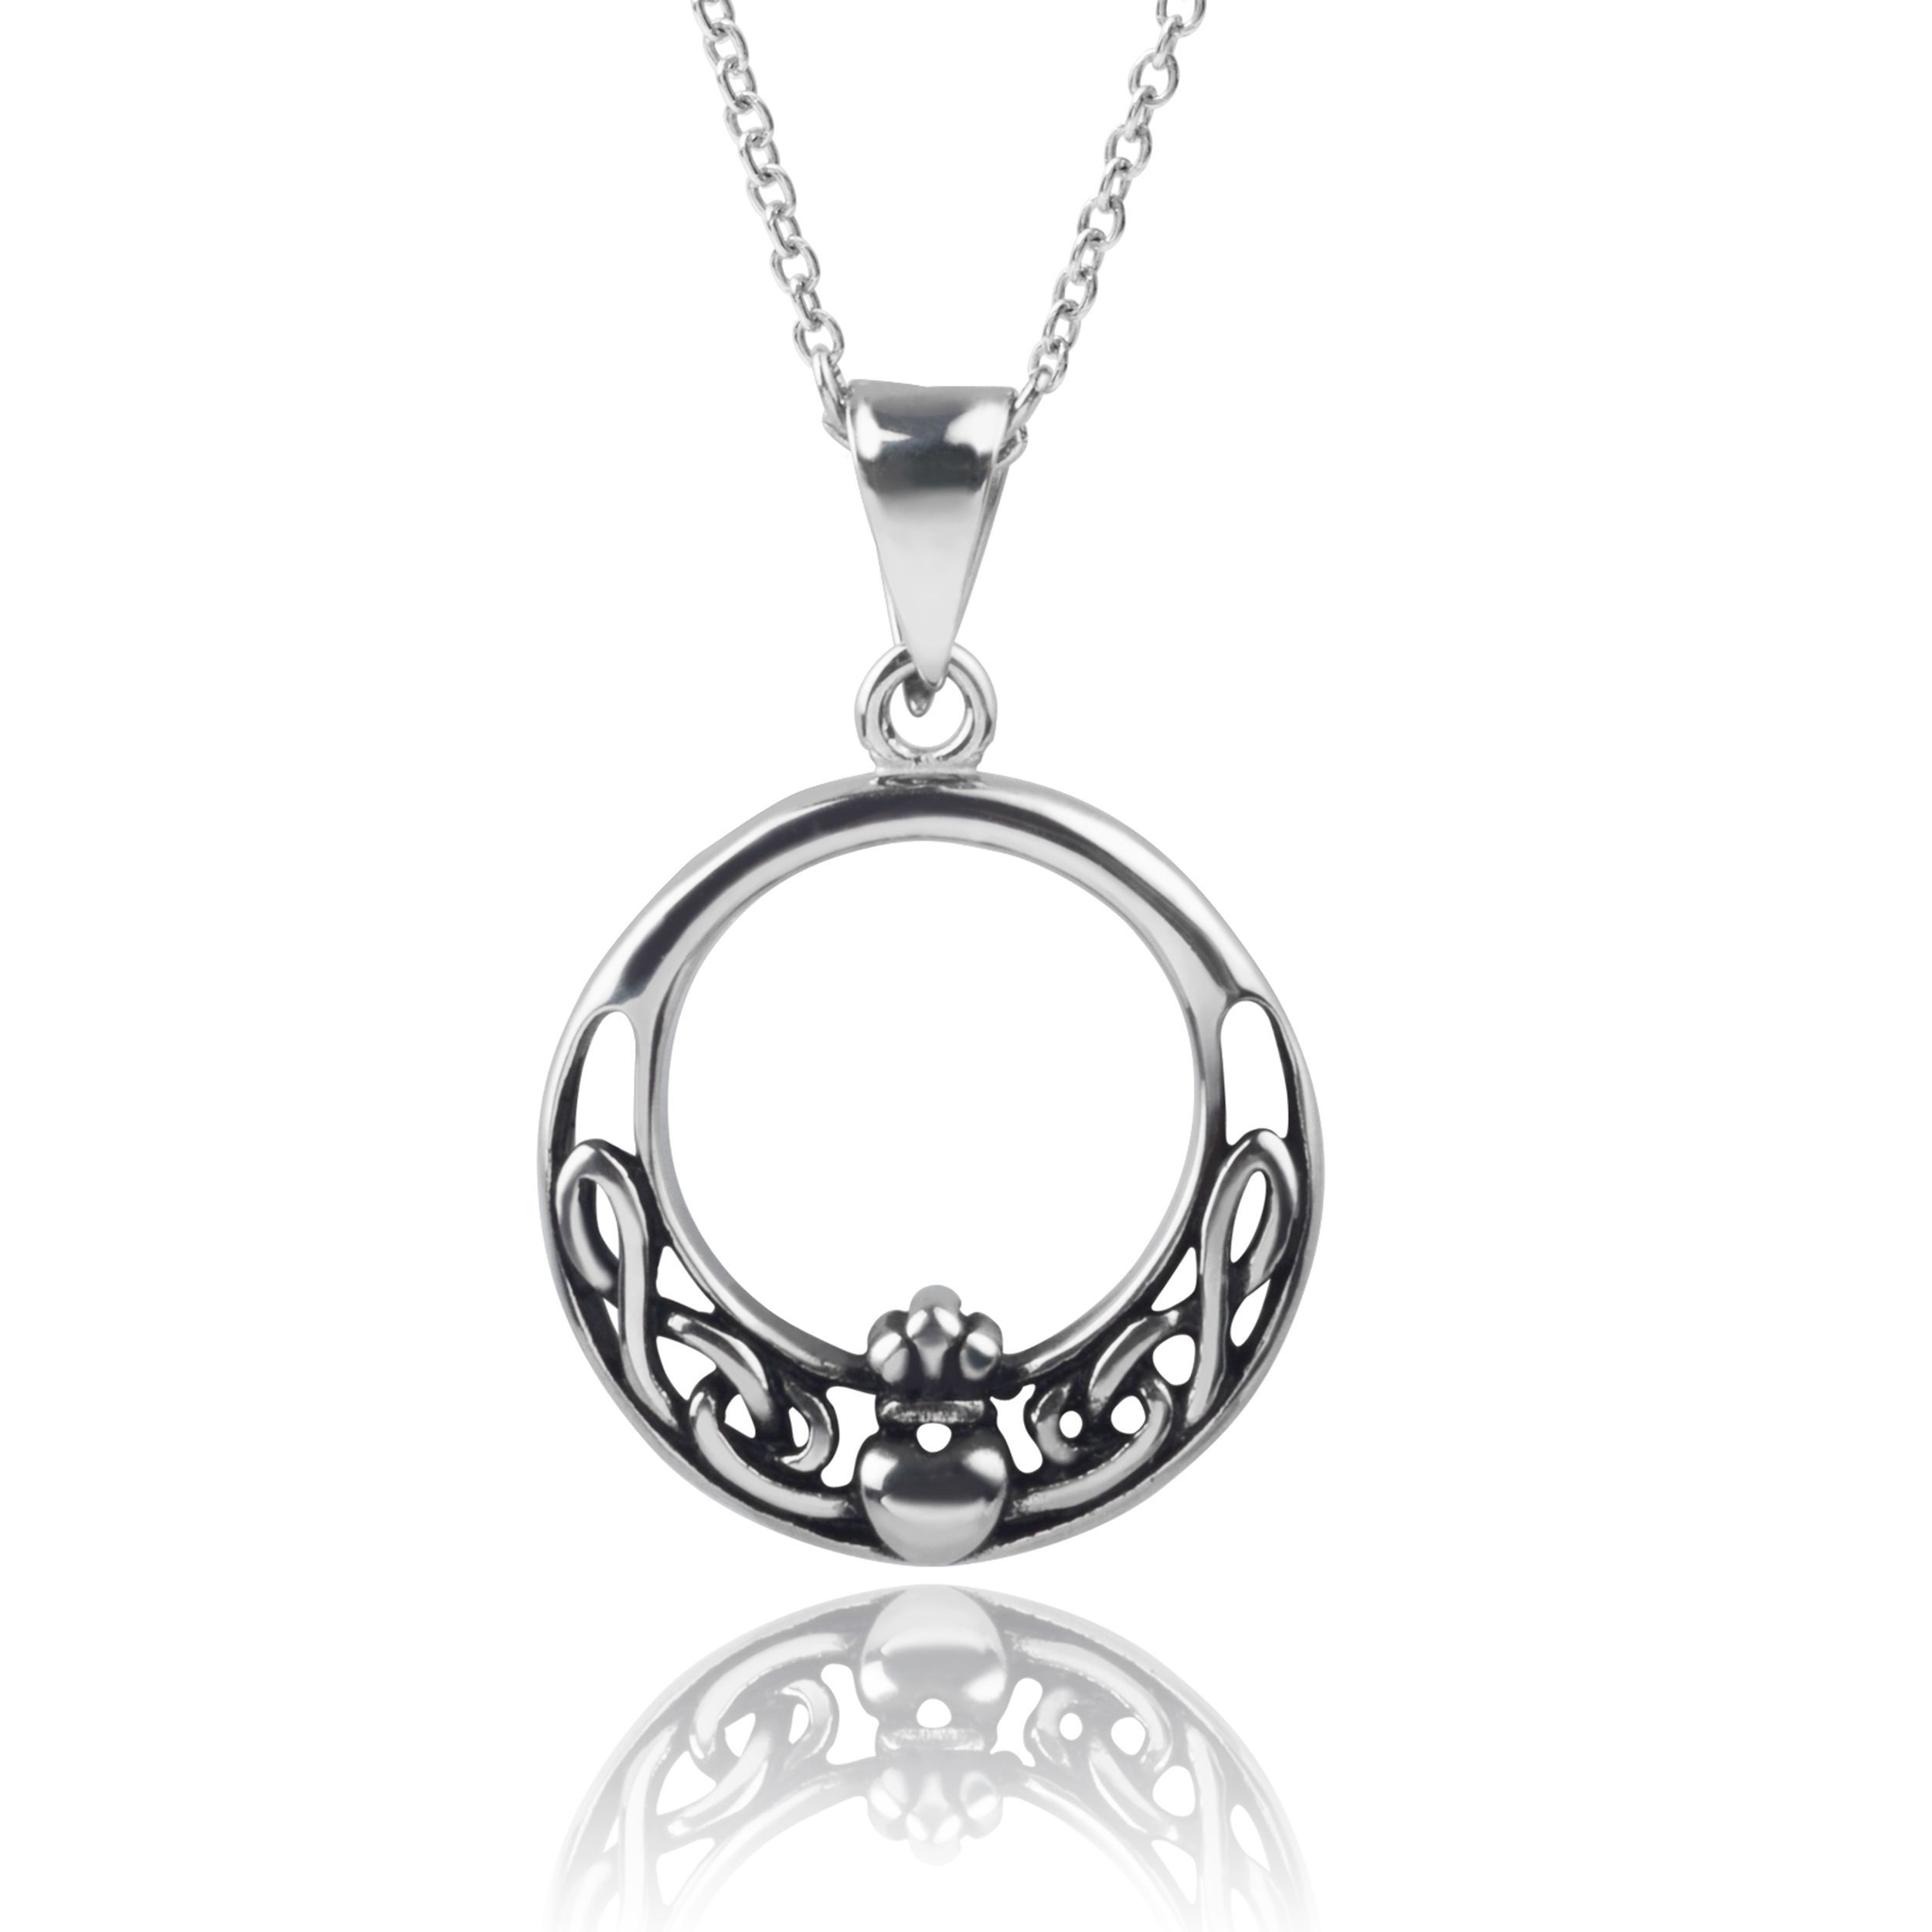 pendant women online zirconic silver quality product pendants necklaces high real engaged wears cubic got necklace celtic with store party